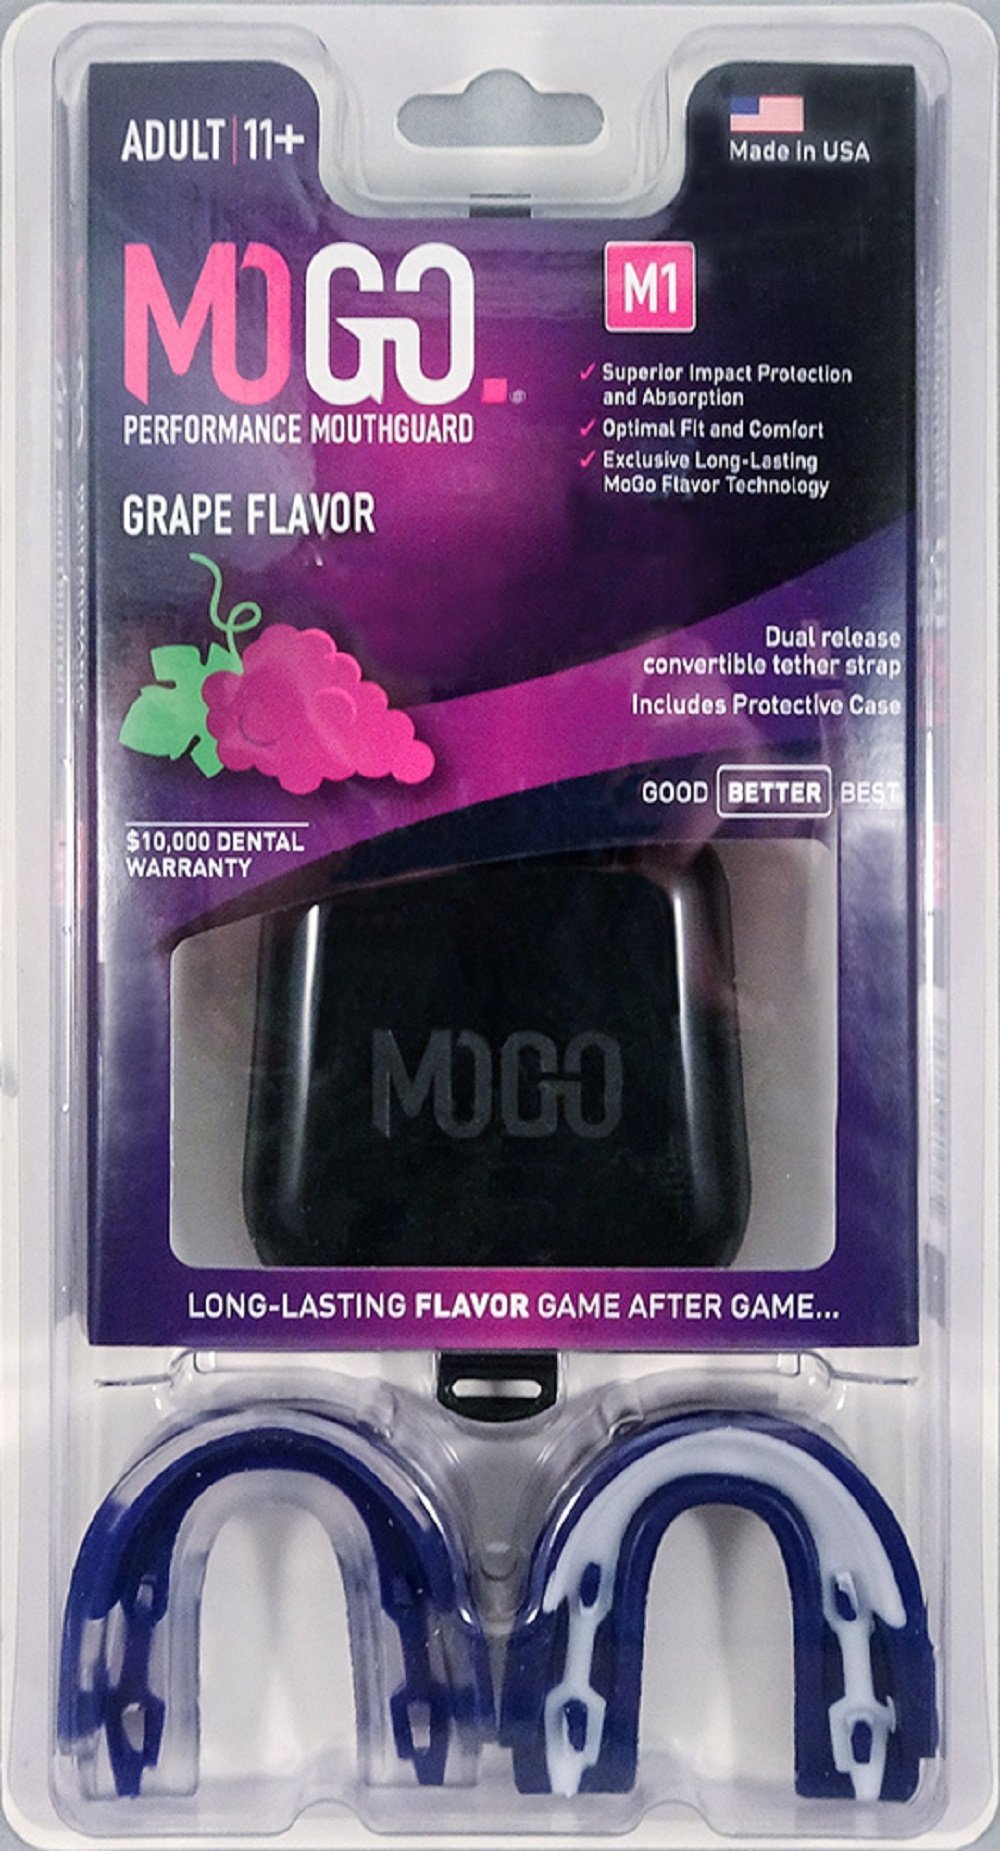 MOGO. Flavored 2 Pack Mouth Guards - Adult Sports Mouthguard for Ages 11 and Up - Mouthpiece for MMA, Football and Lacrosse - Tether Strap, Fitting Instructions and Carry Case (Grape)